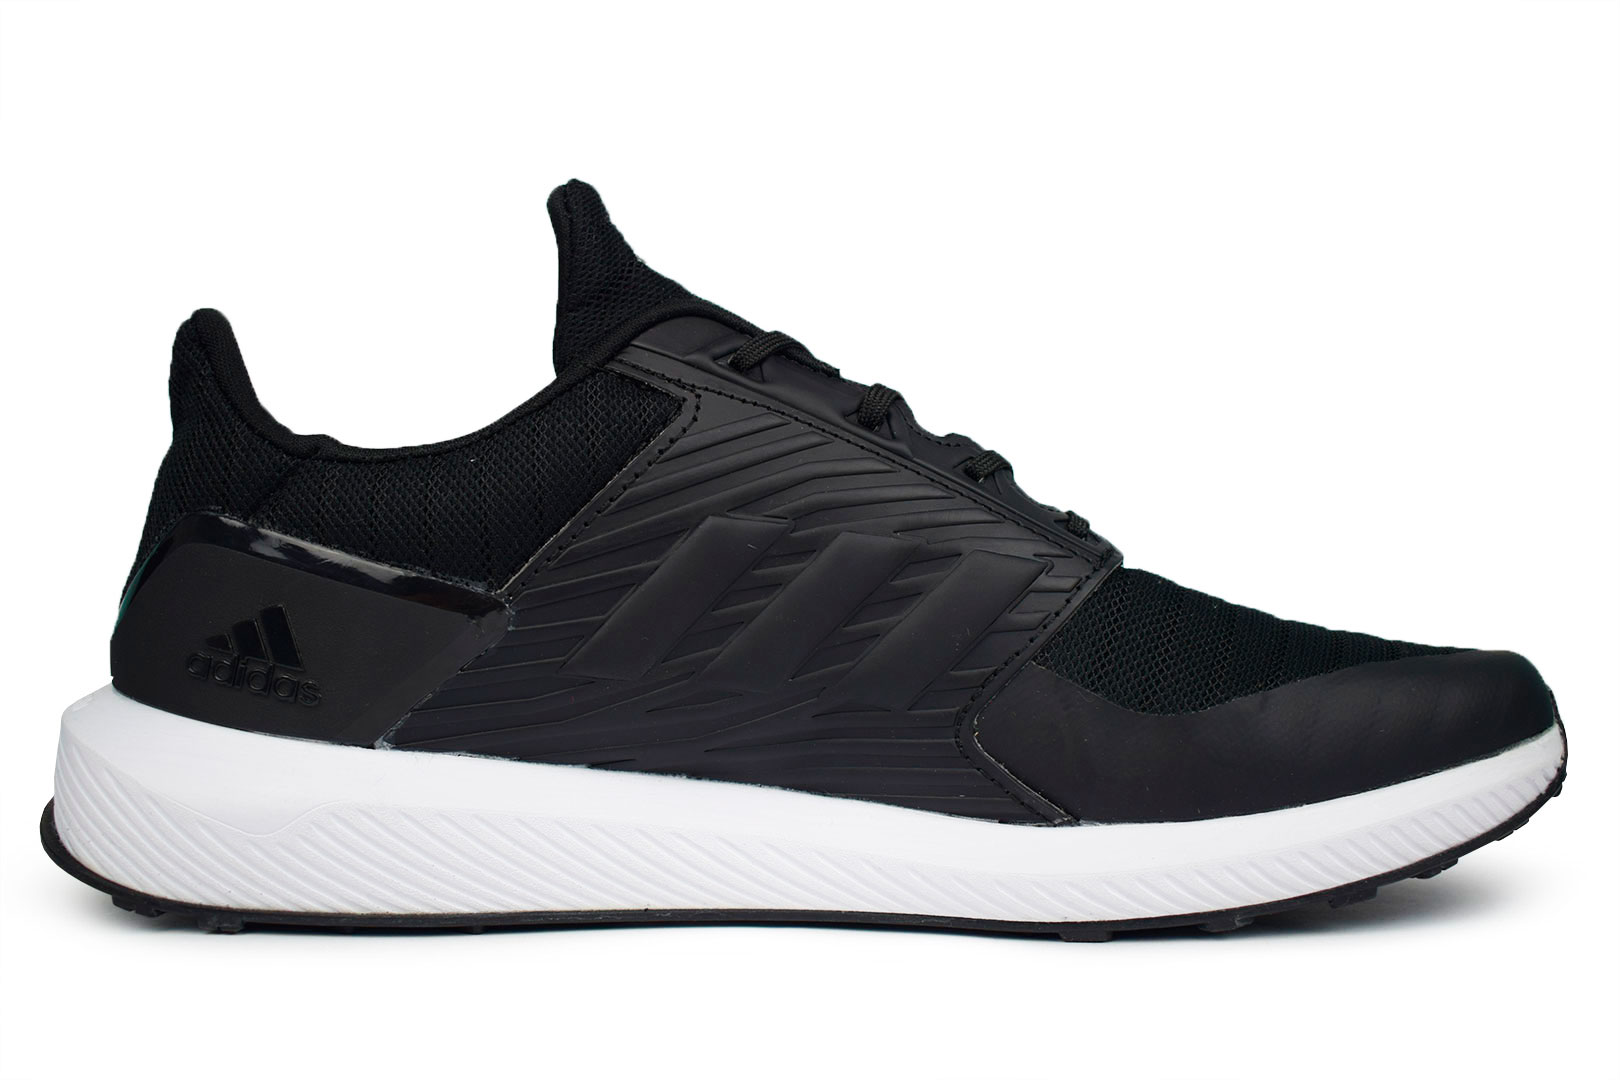 Мужские кроссовки Adidas Cloudfoam Fitfoam Dark Men - фото №2